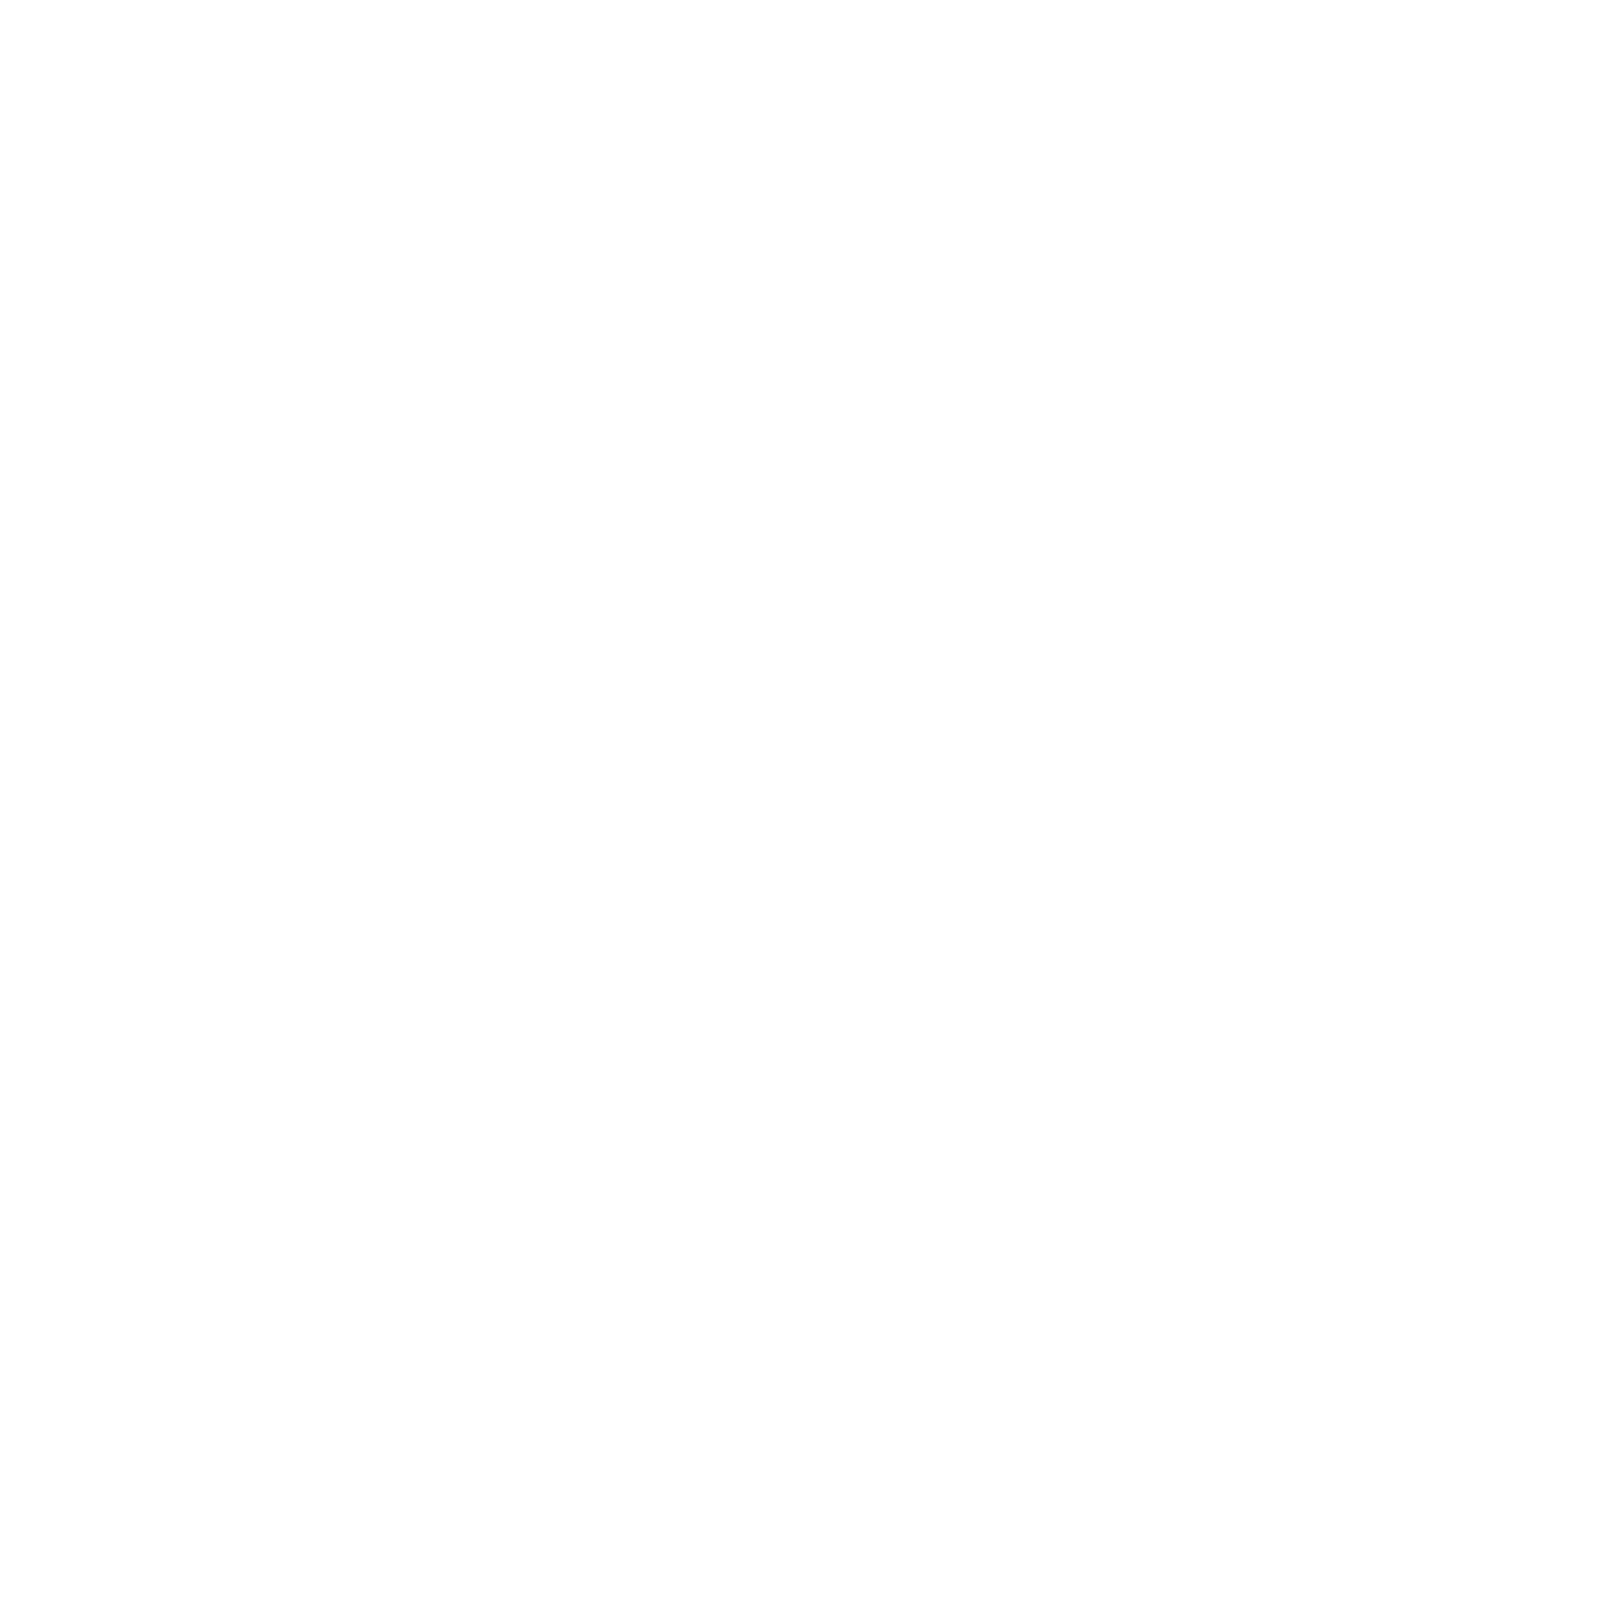 dartmouth-project-logo